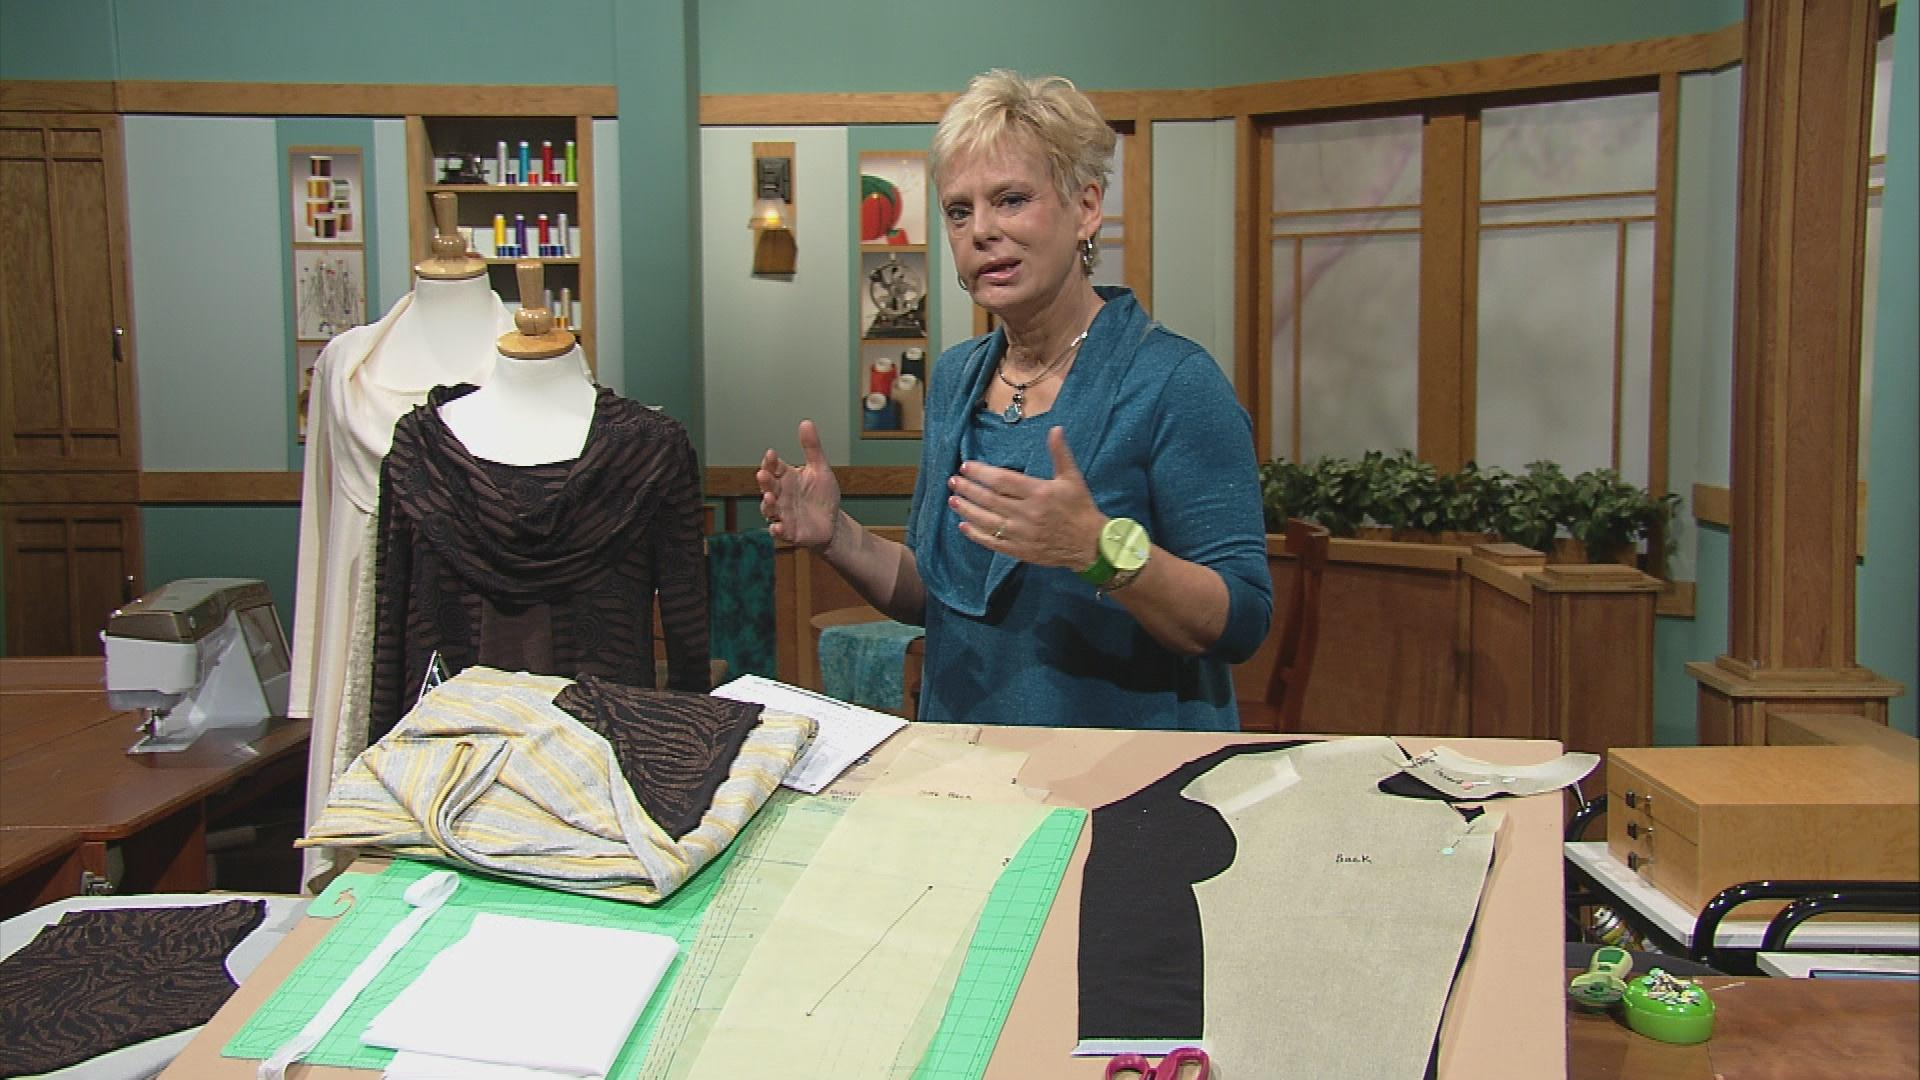 Sewing with nancy pbs sewing todays fashion trends tunics jeuxipadfo Image collections